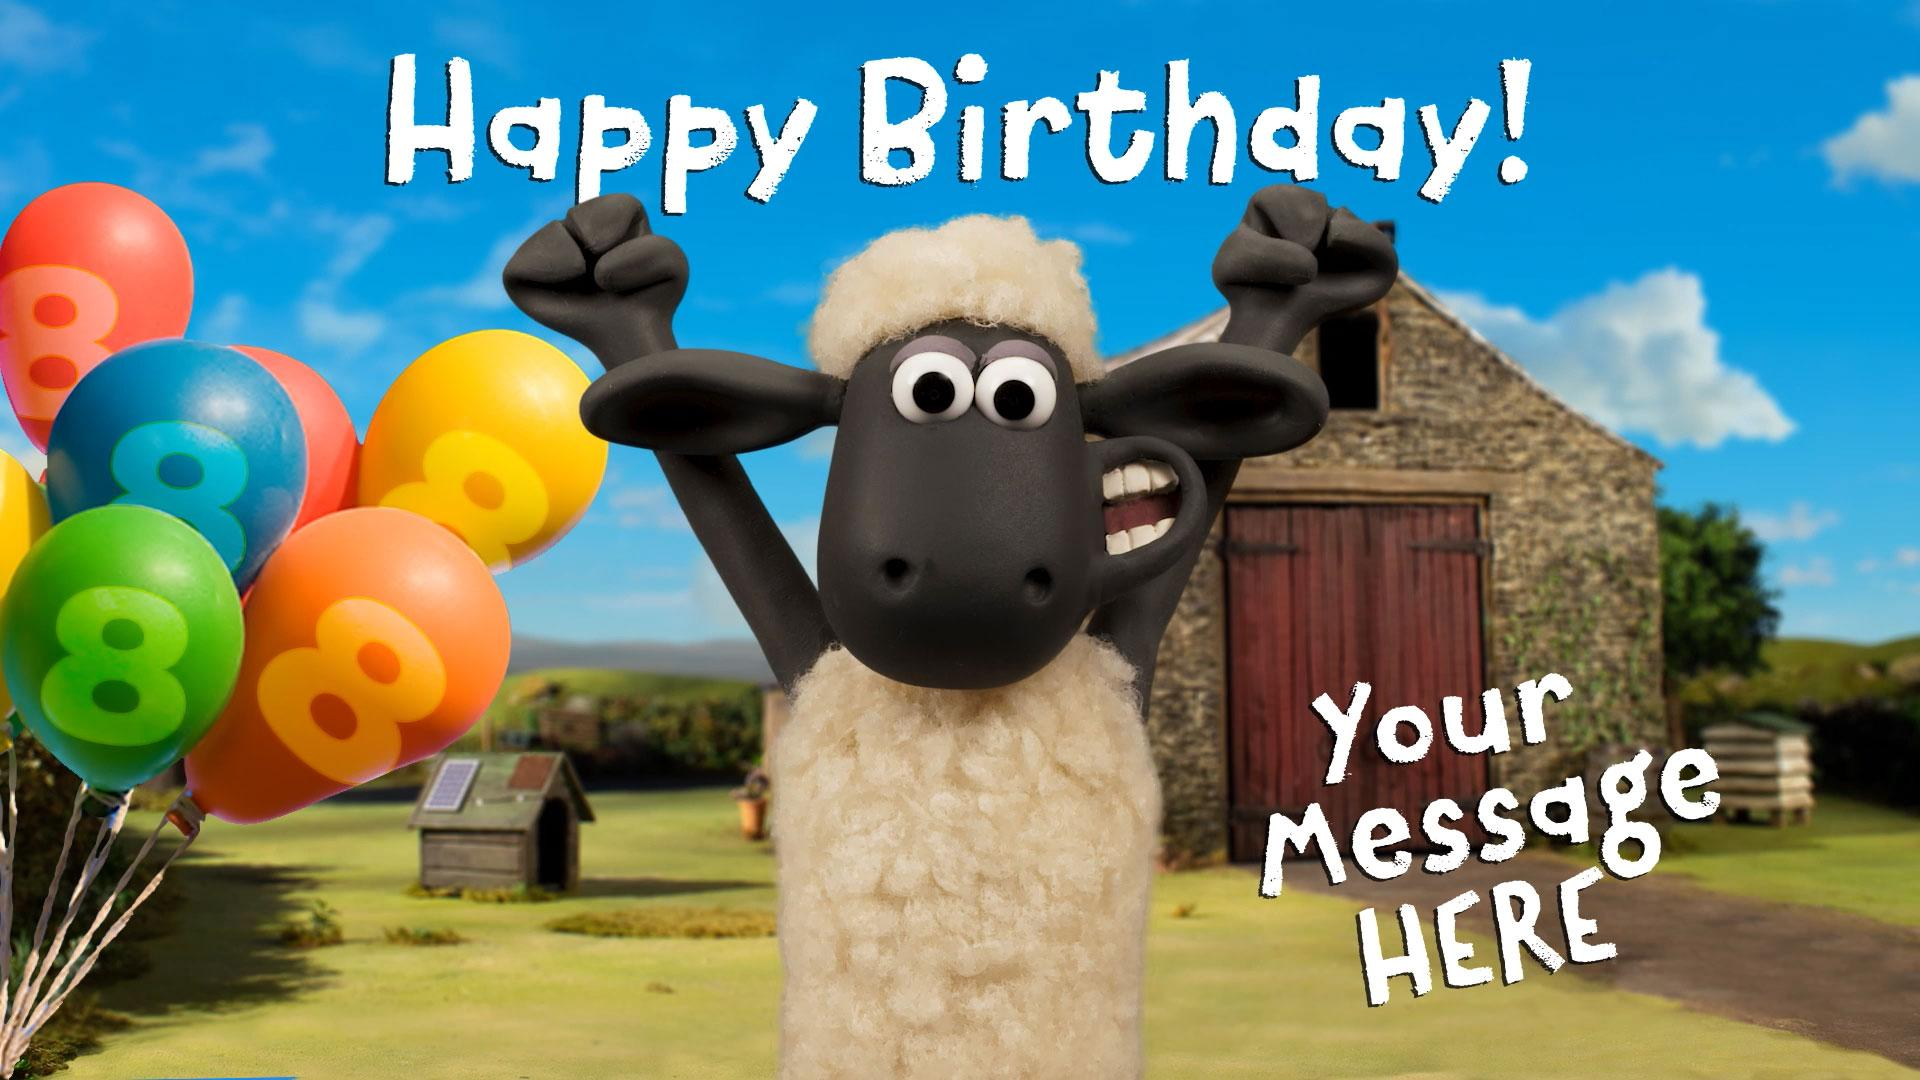 Send a Shaun Birthday Video Message!